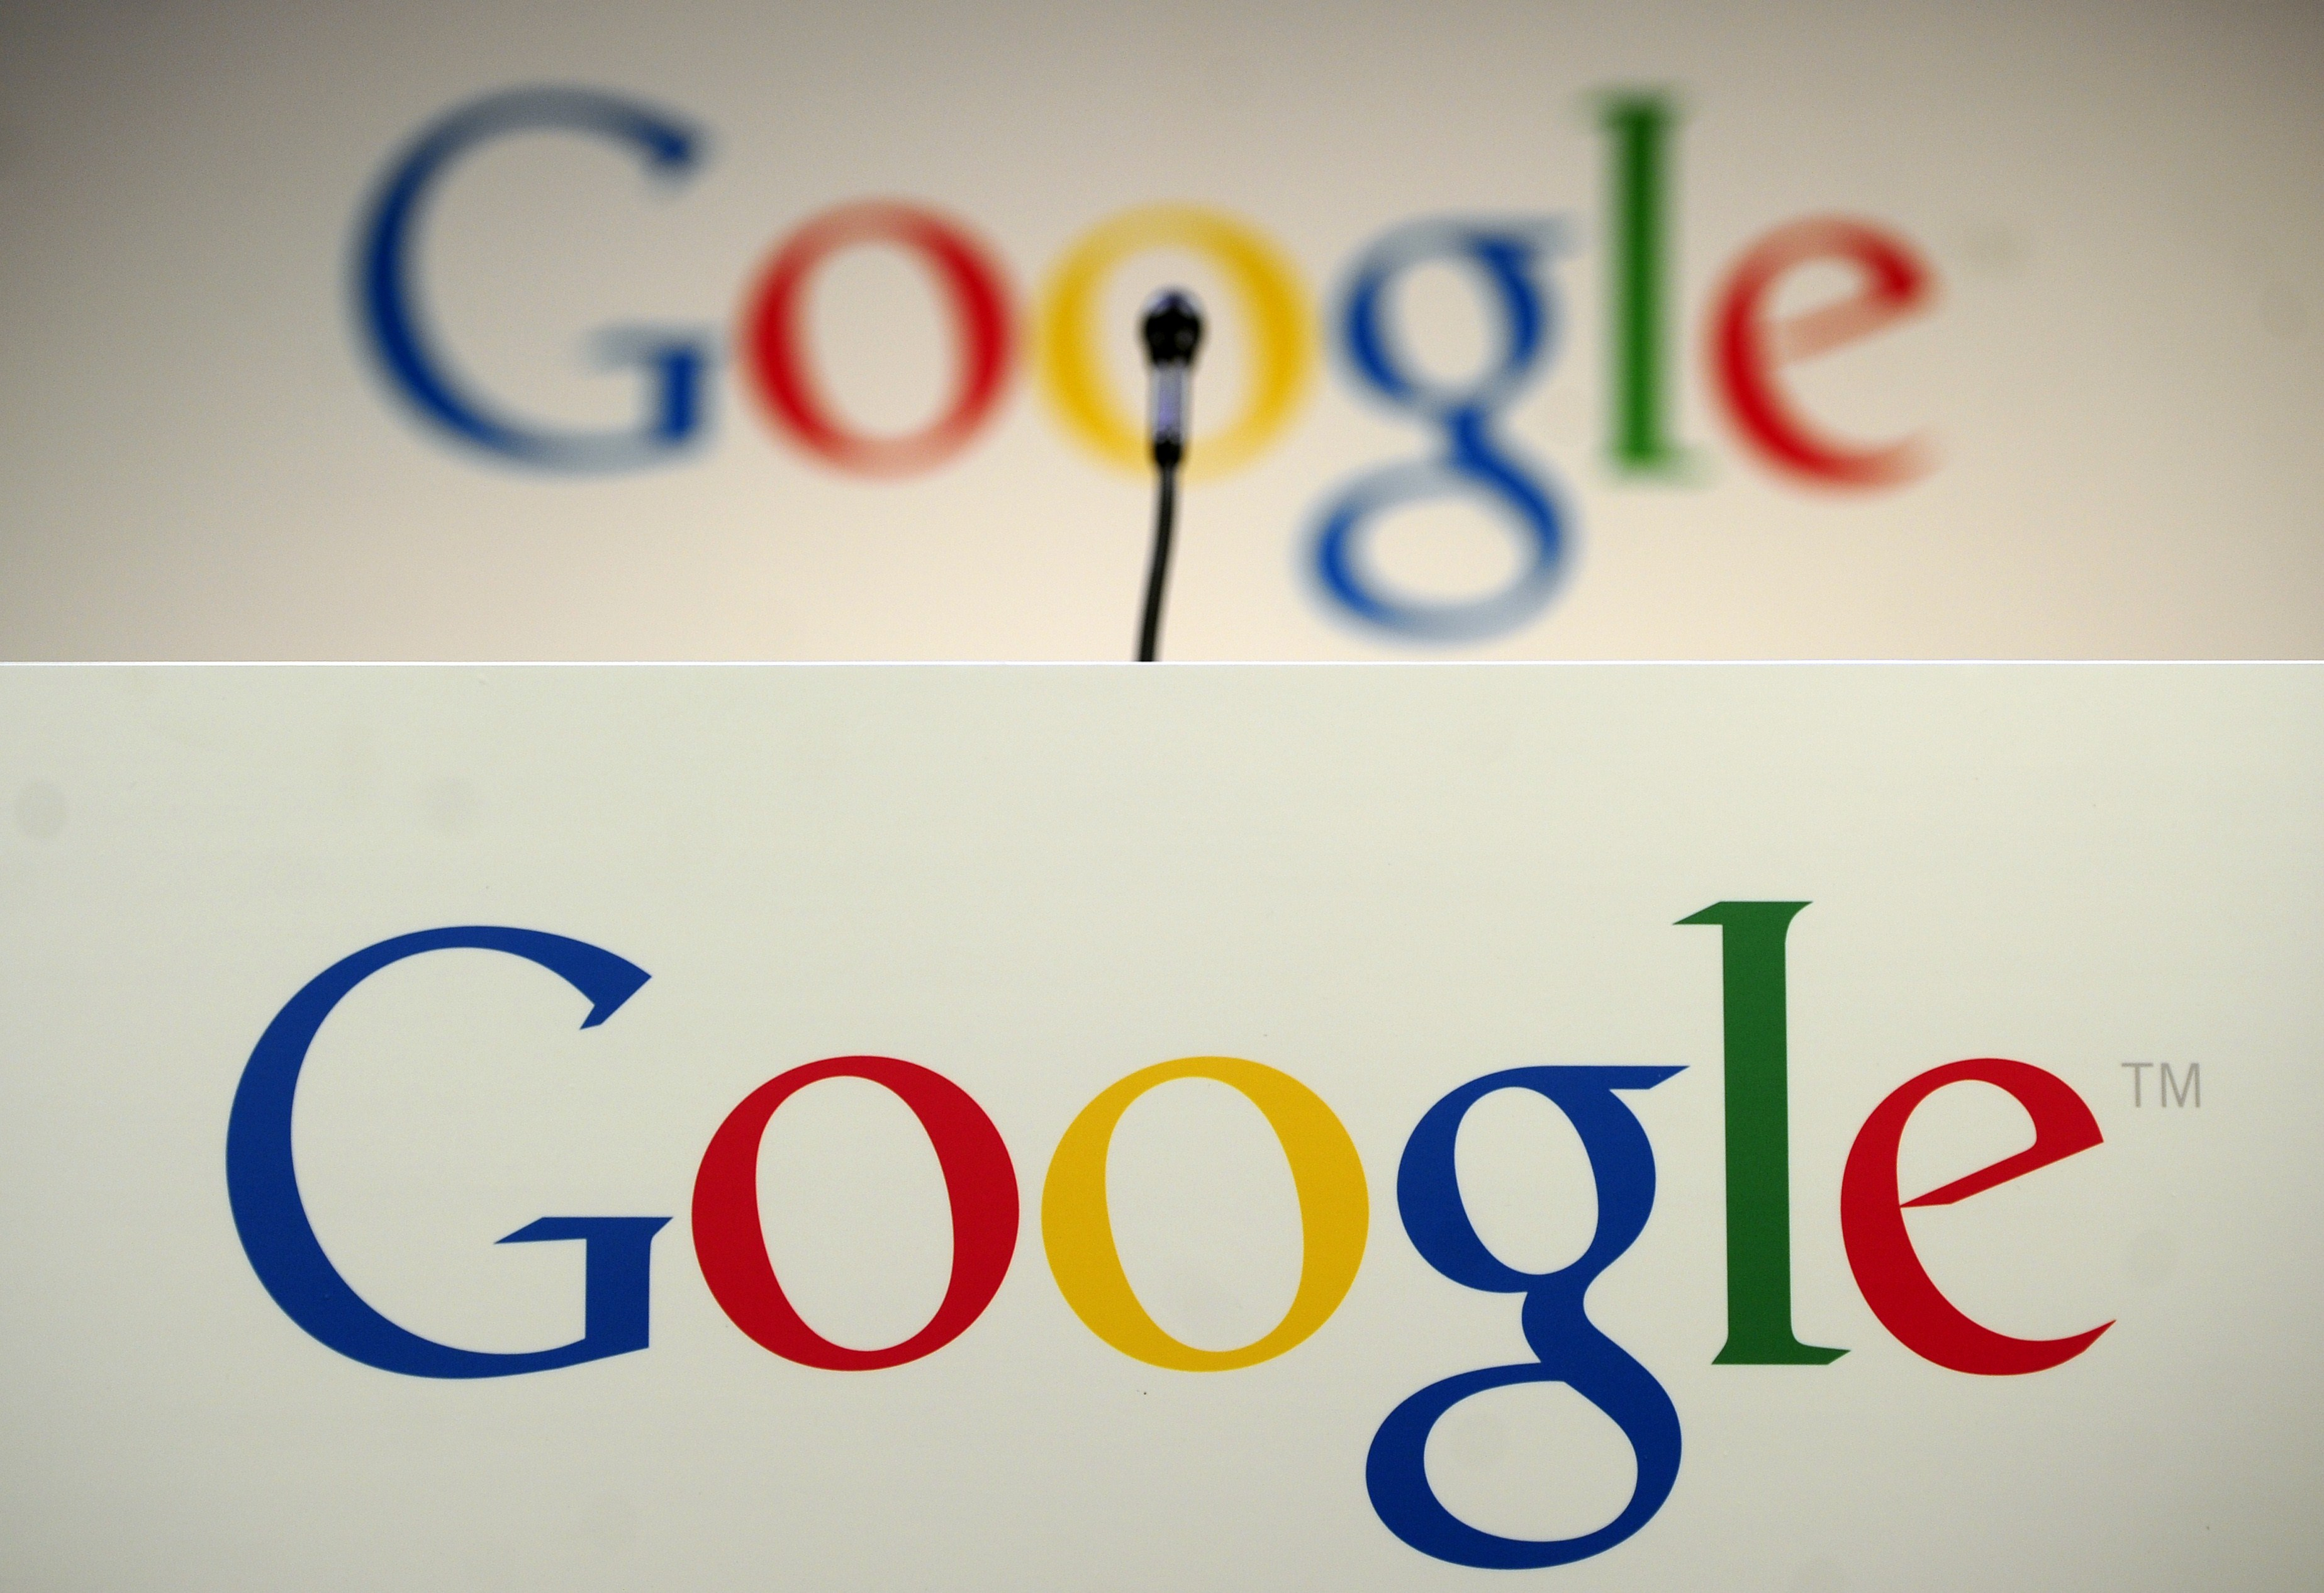 A microphone stands in front of a Google logo during a press annoucement at Google headquarters in New York, May 21, 2012. (Photo by Emmanuel Dunand/AFP/Getty Images)